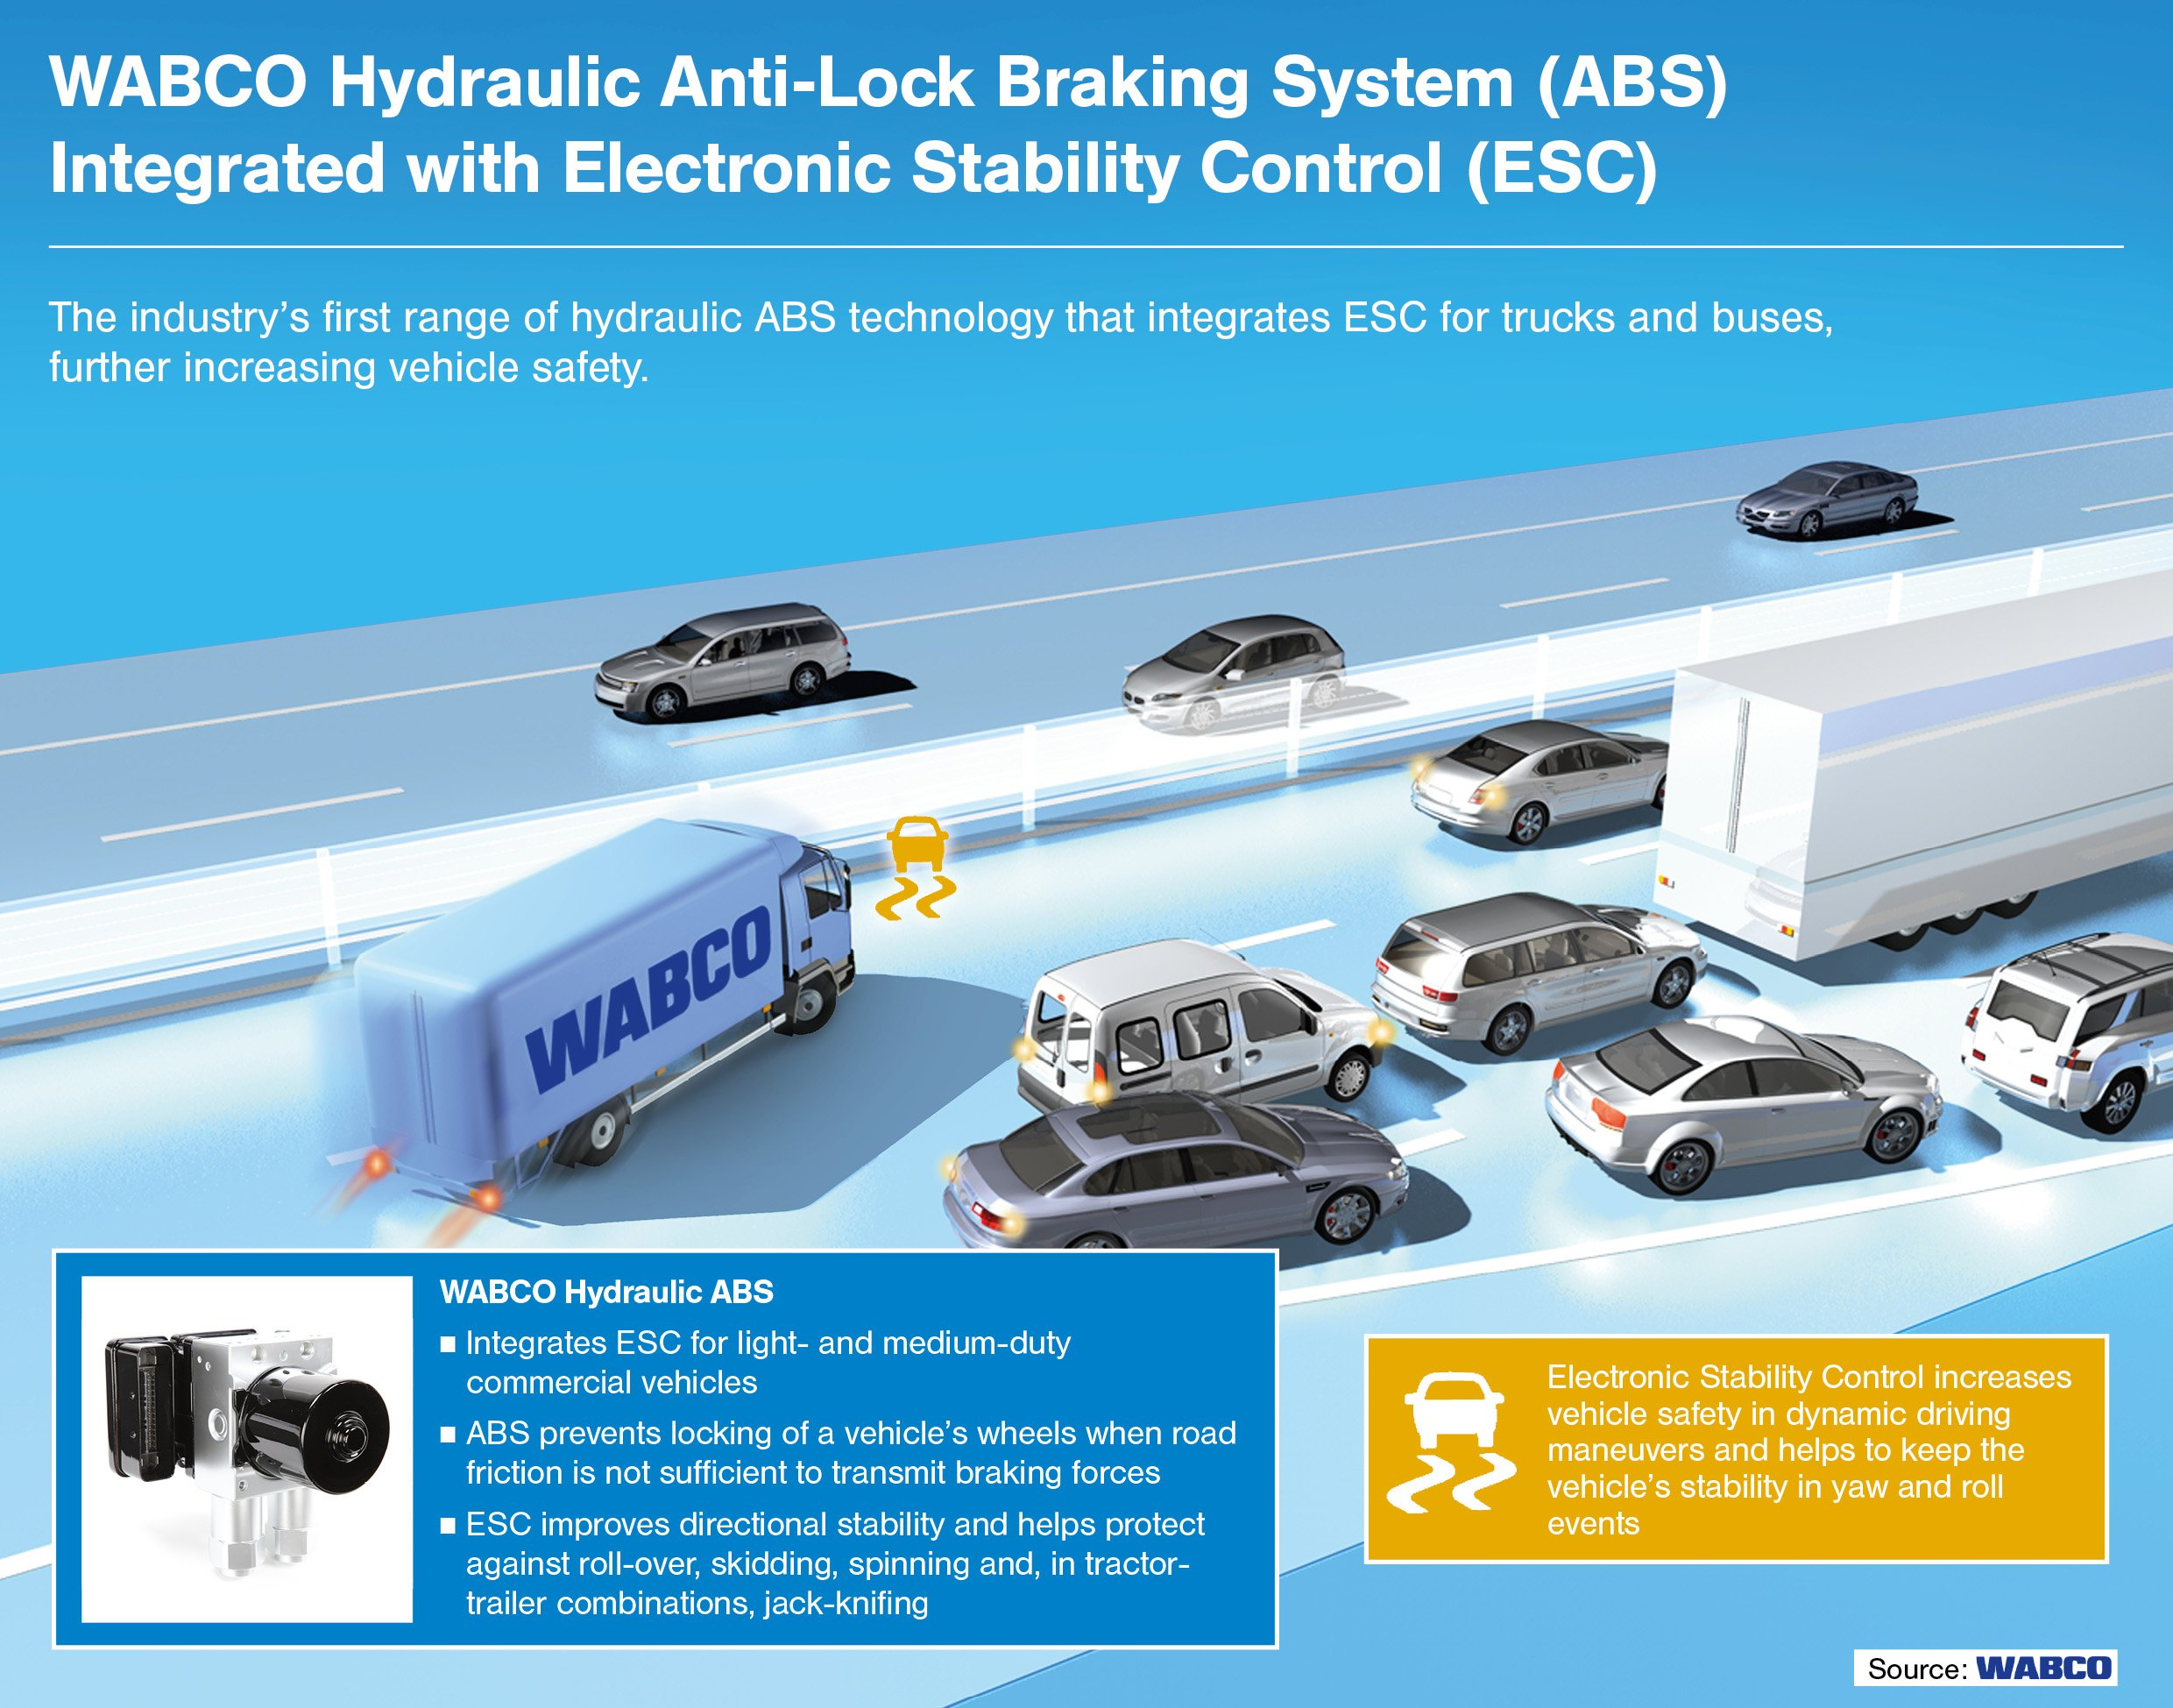 Wabco Moves On Truck Stability Control, Anticipating Federal